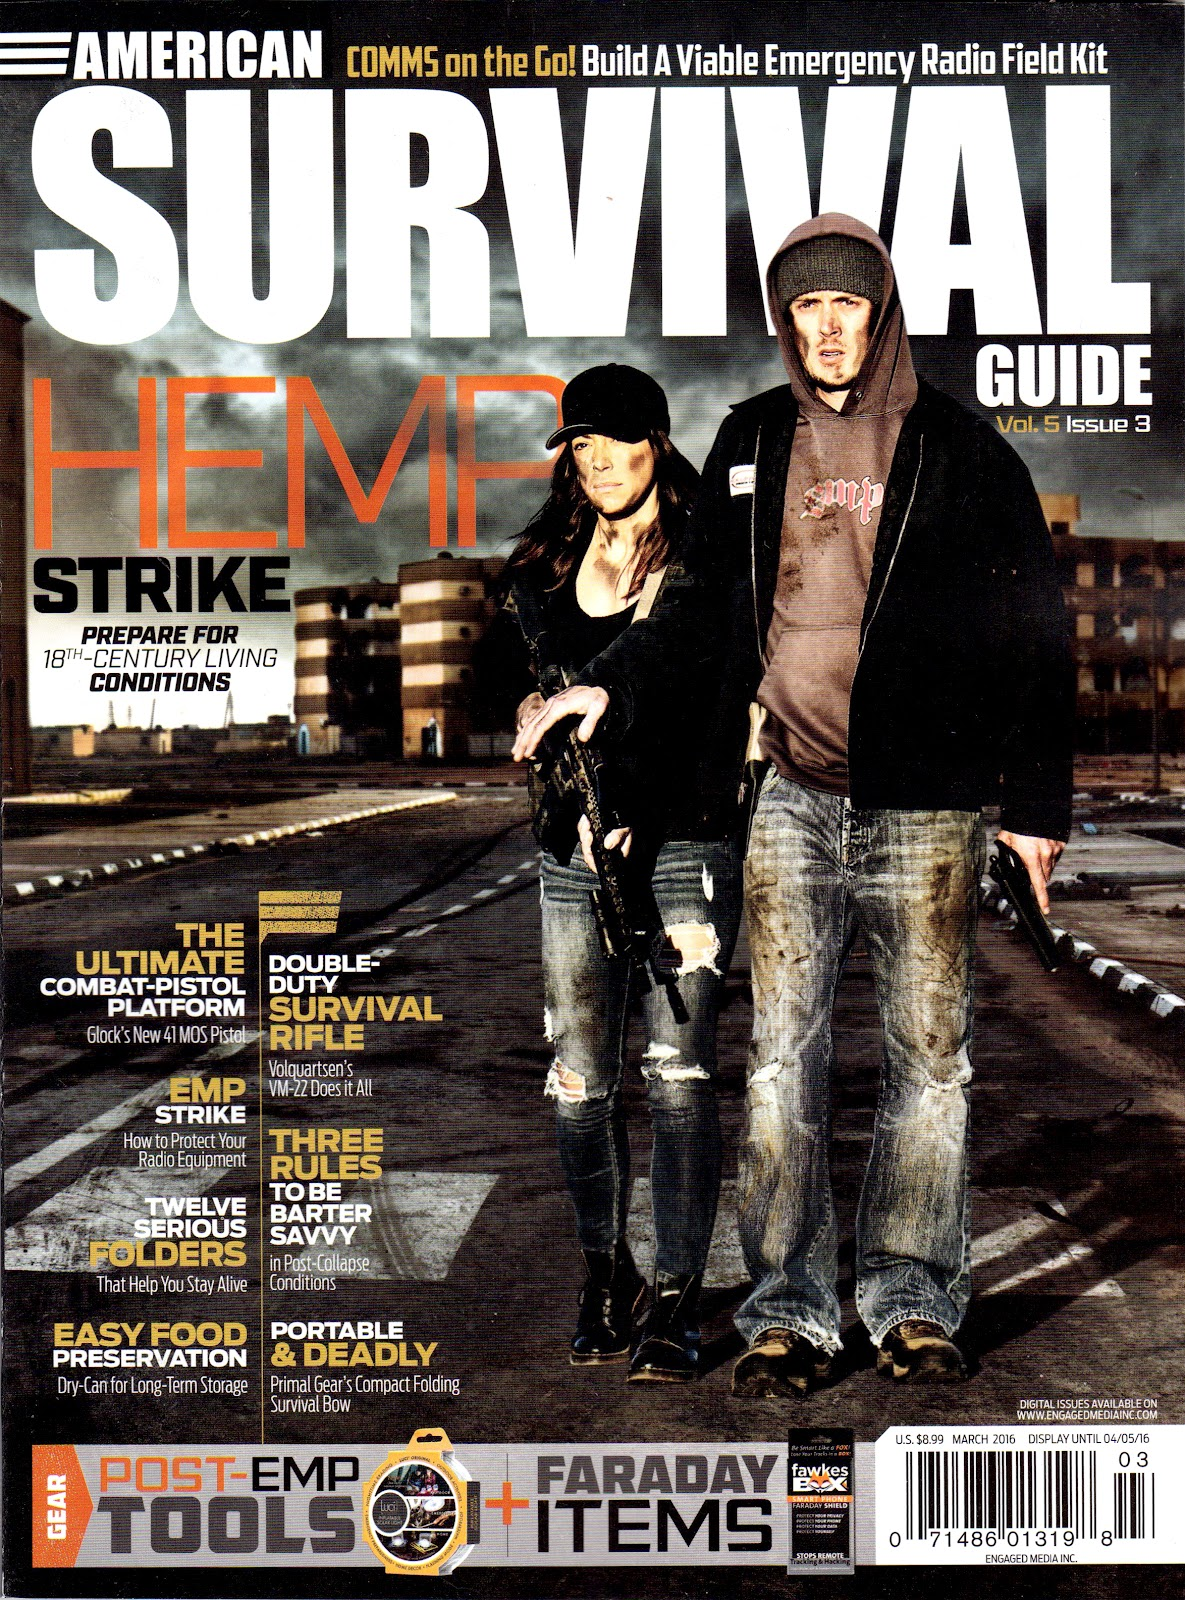 American Survival Guide March 2016 Cover